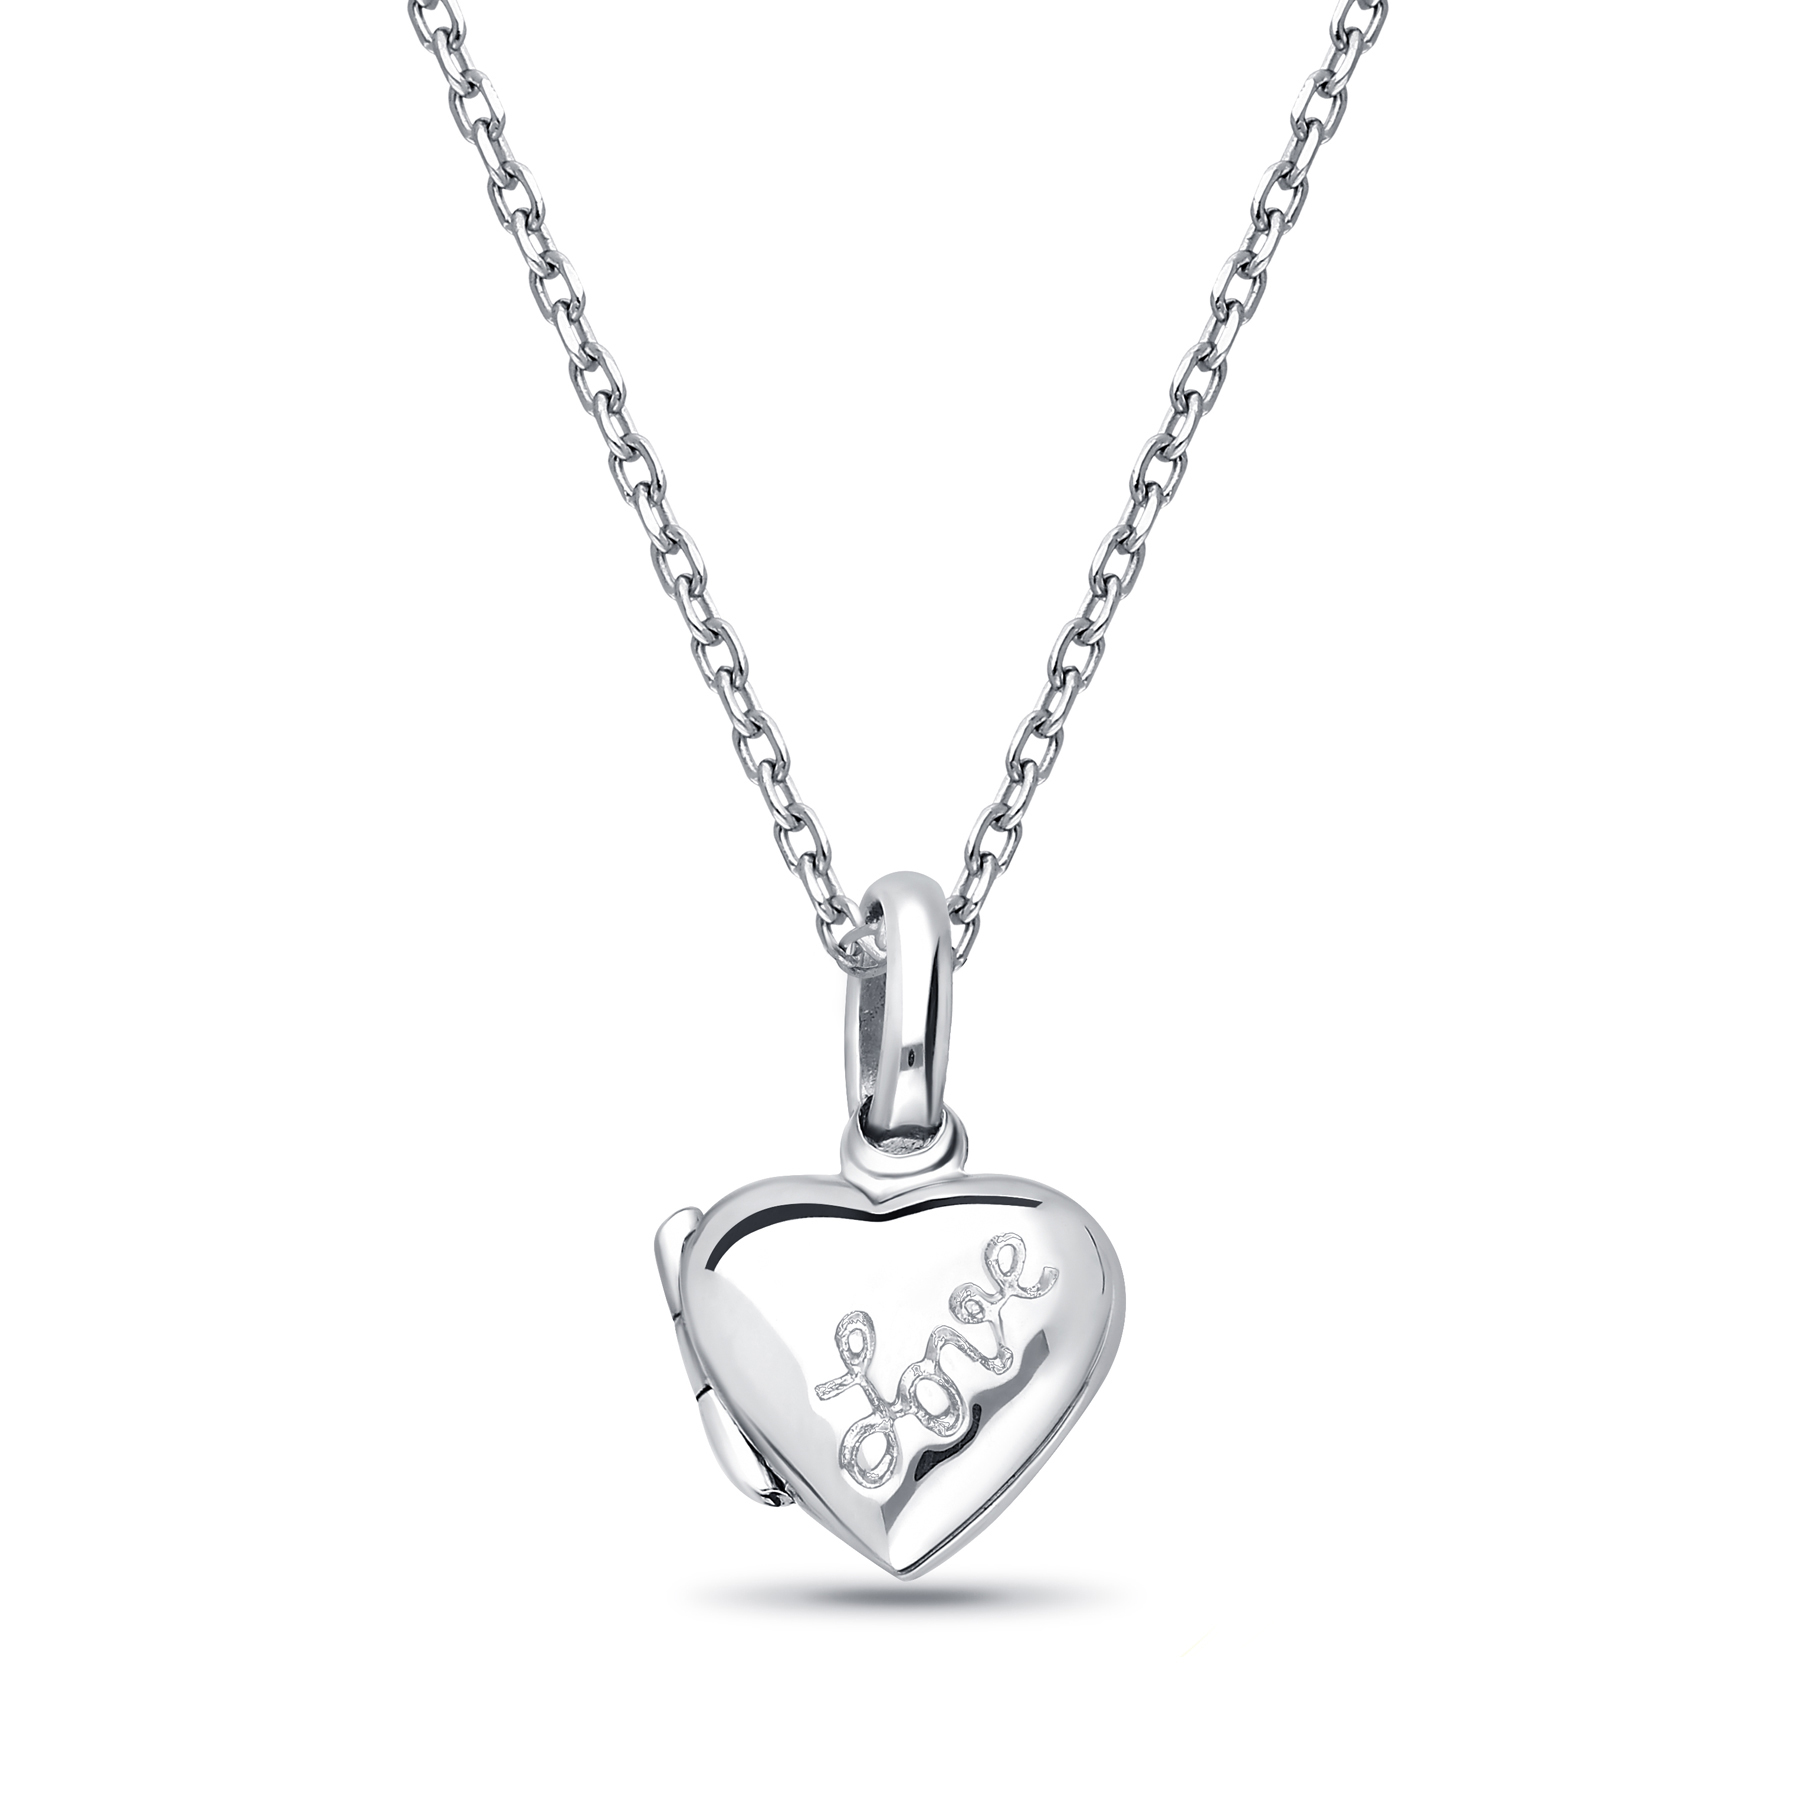 706-14349 - 925 Sterling Silver Heart, Message & Locket  Pendant, Engraved with Love